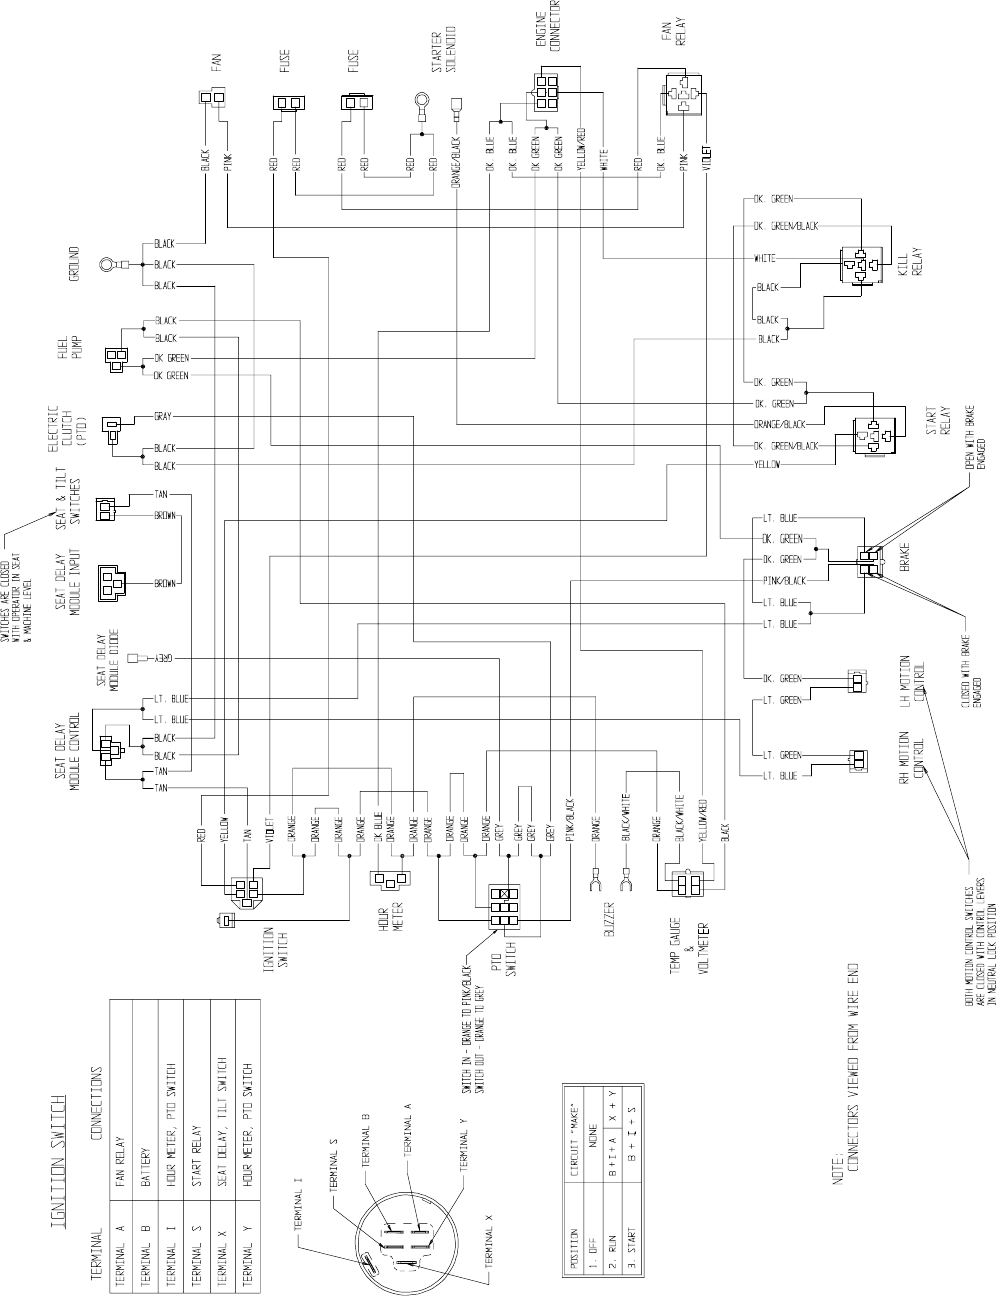 fe0094d5 b49c 4e15 9446 11a96067f628 bg35 hd wallpapers wiring diagram for exmark lazer z 3dhdhddesignf tk Muncie PTO Diagram at creativeand.co